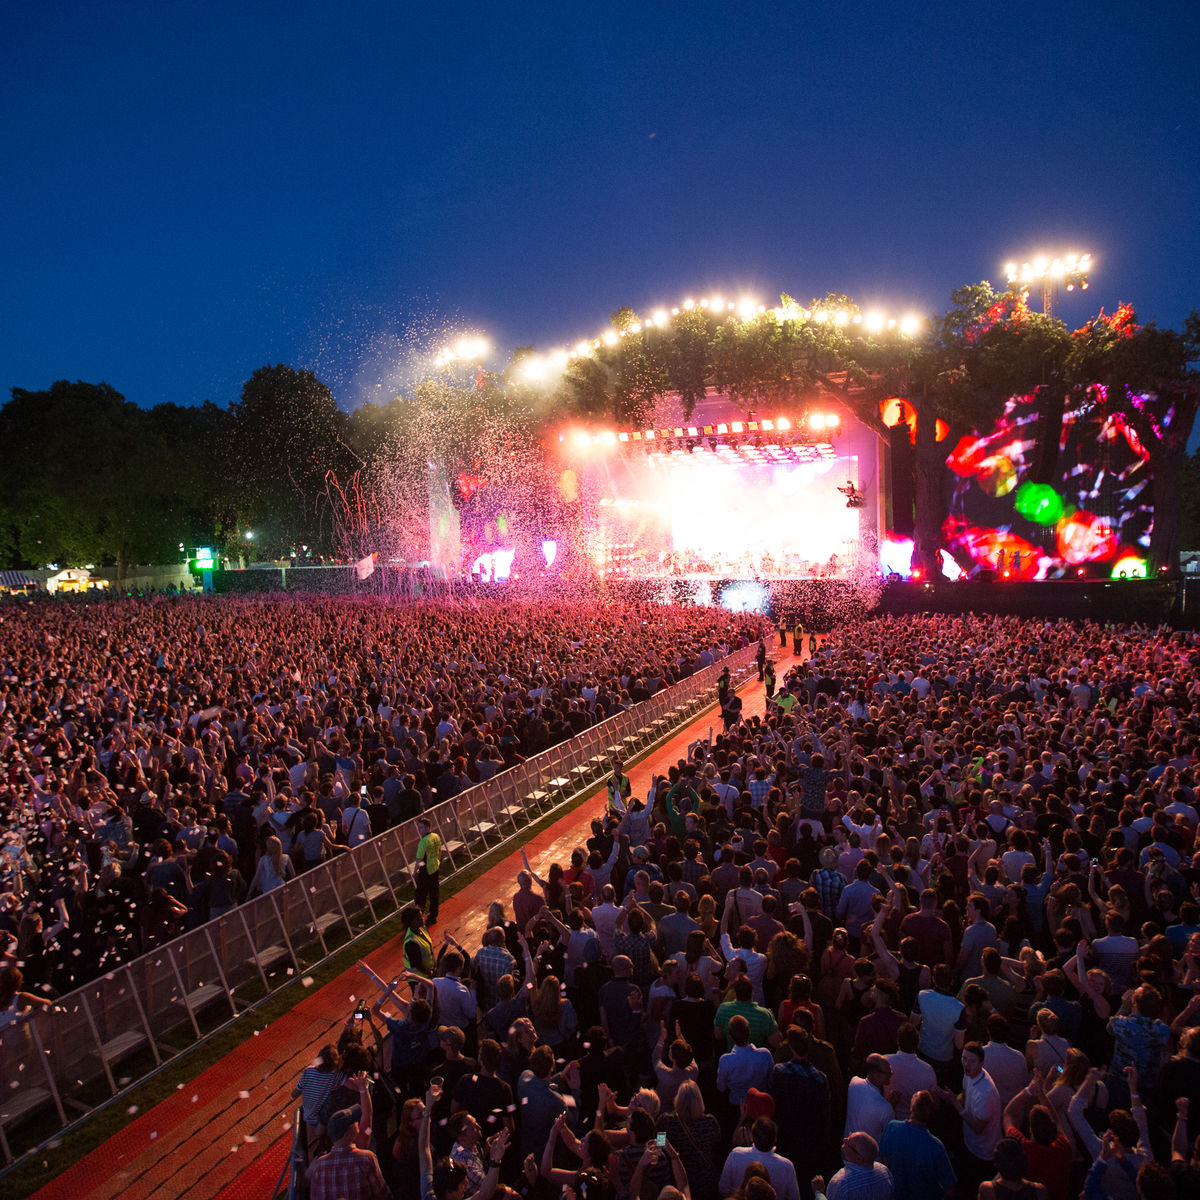 Image of artist performing on stage at BST Hyde Park